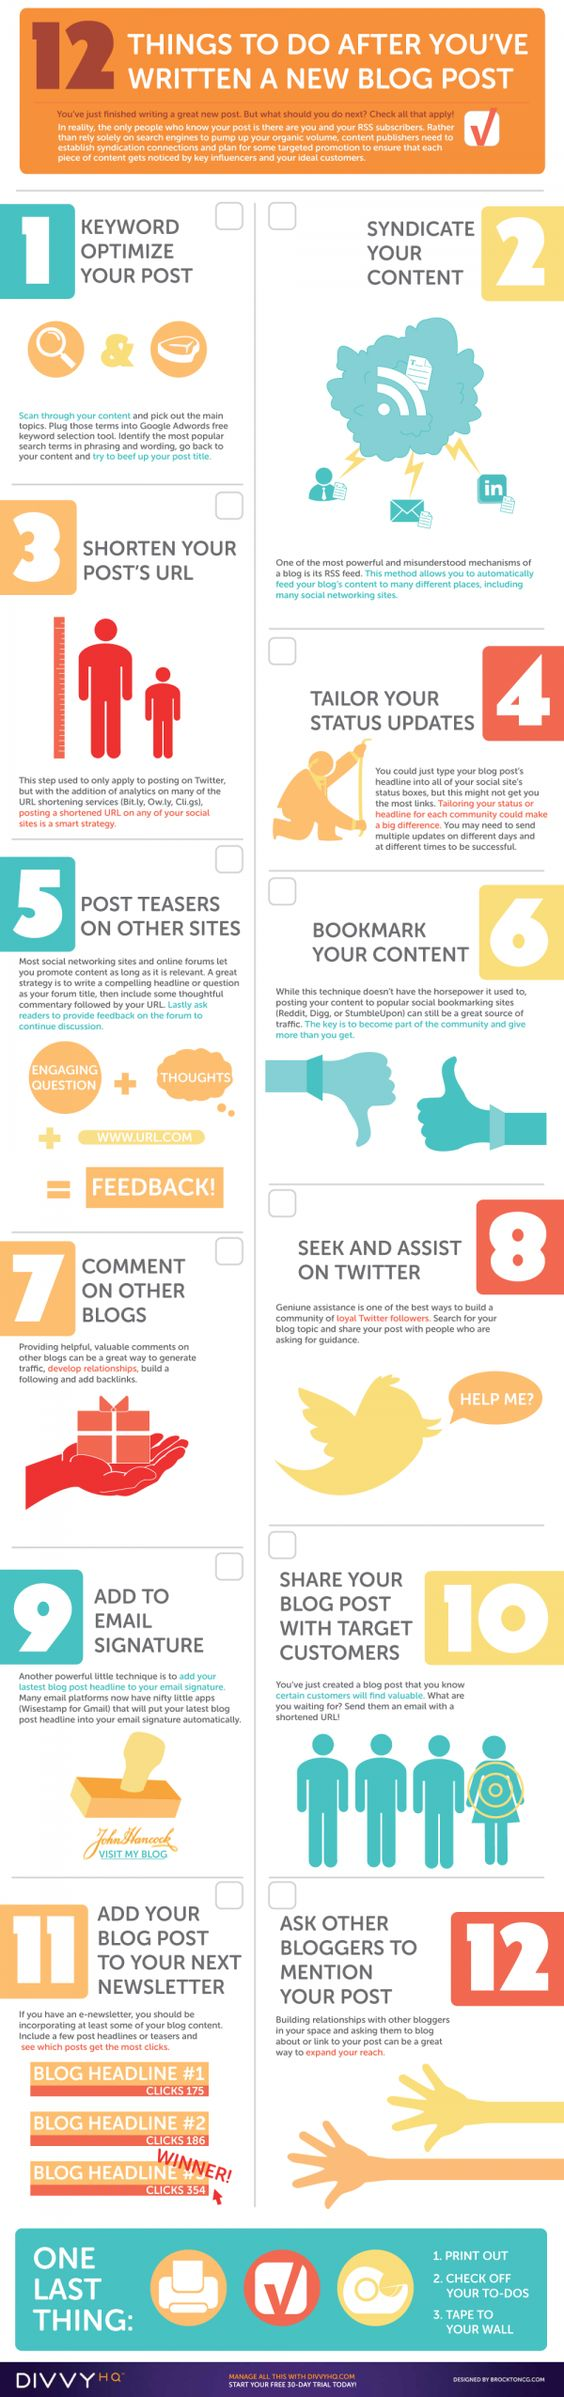 Good infographic for Bloggers